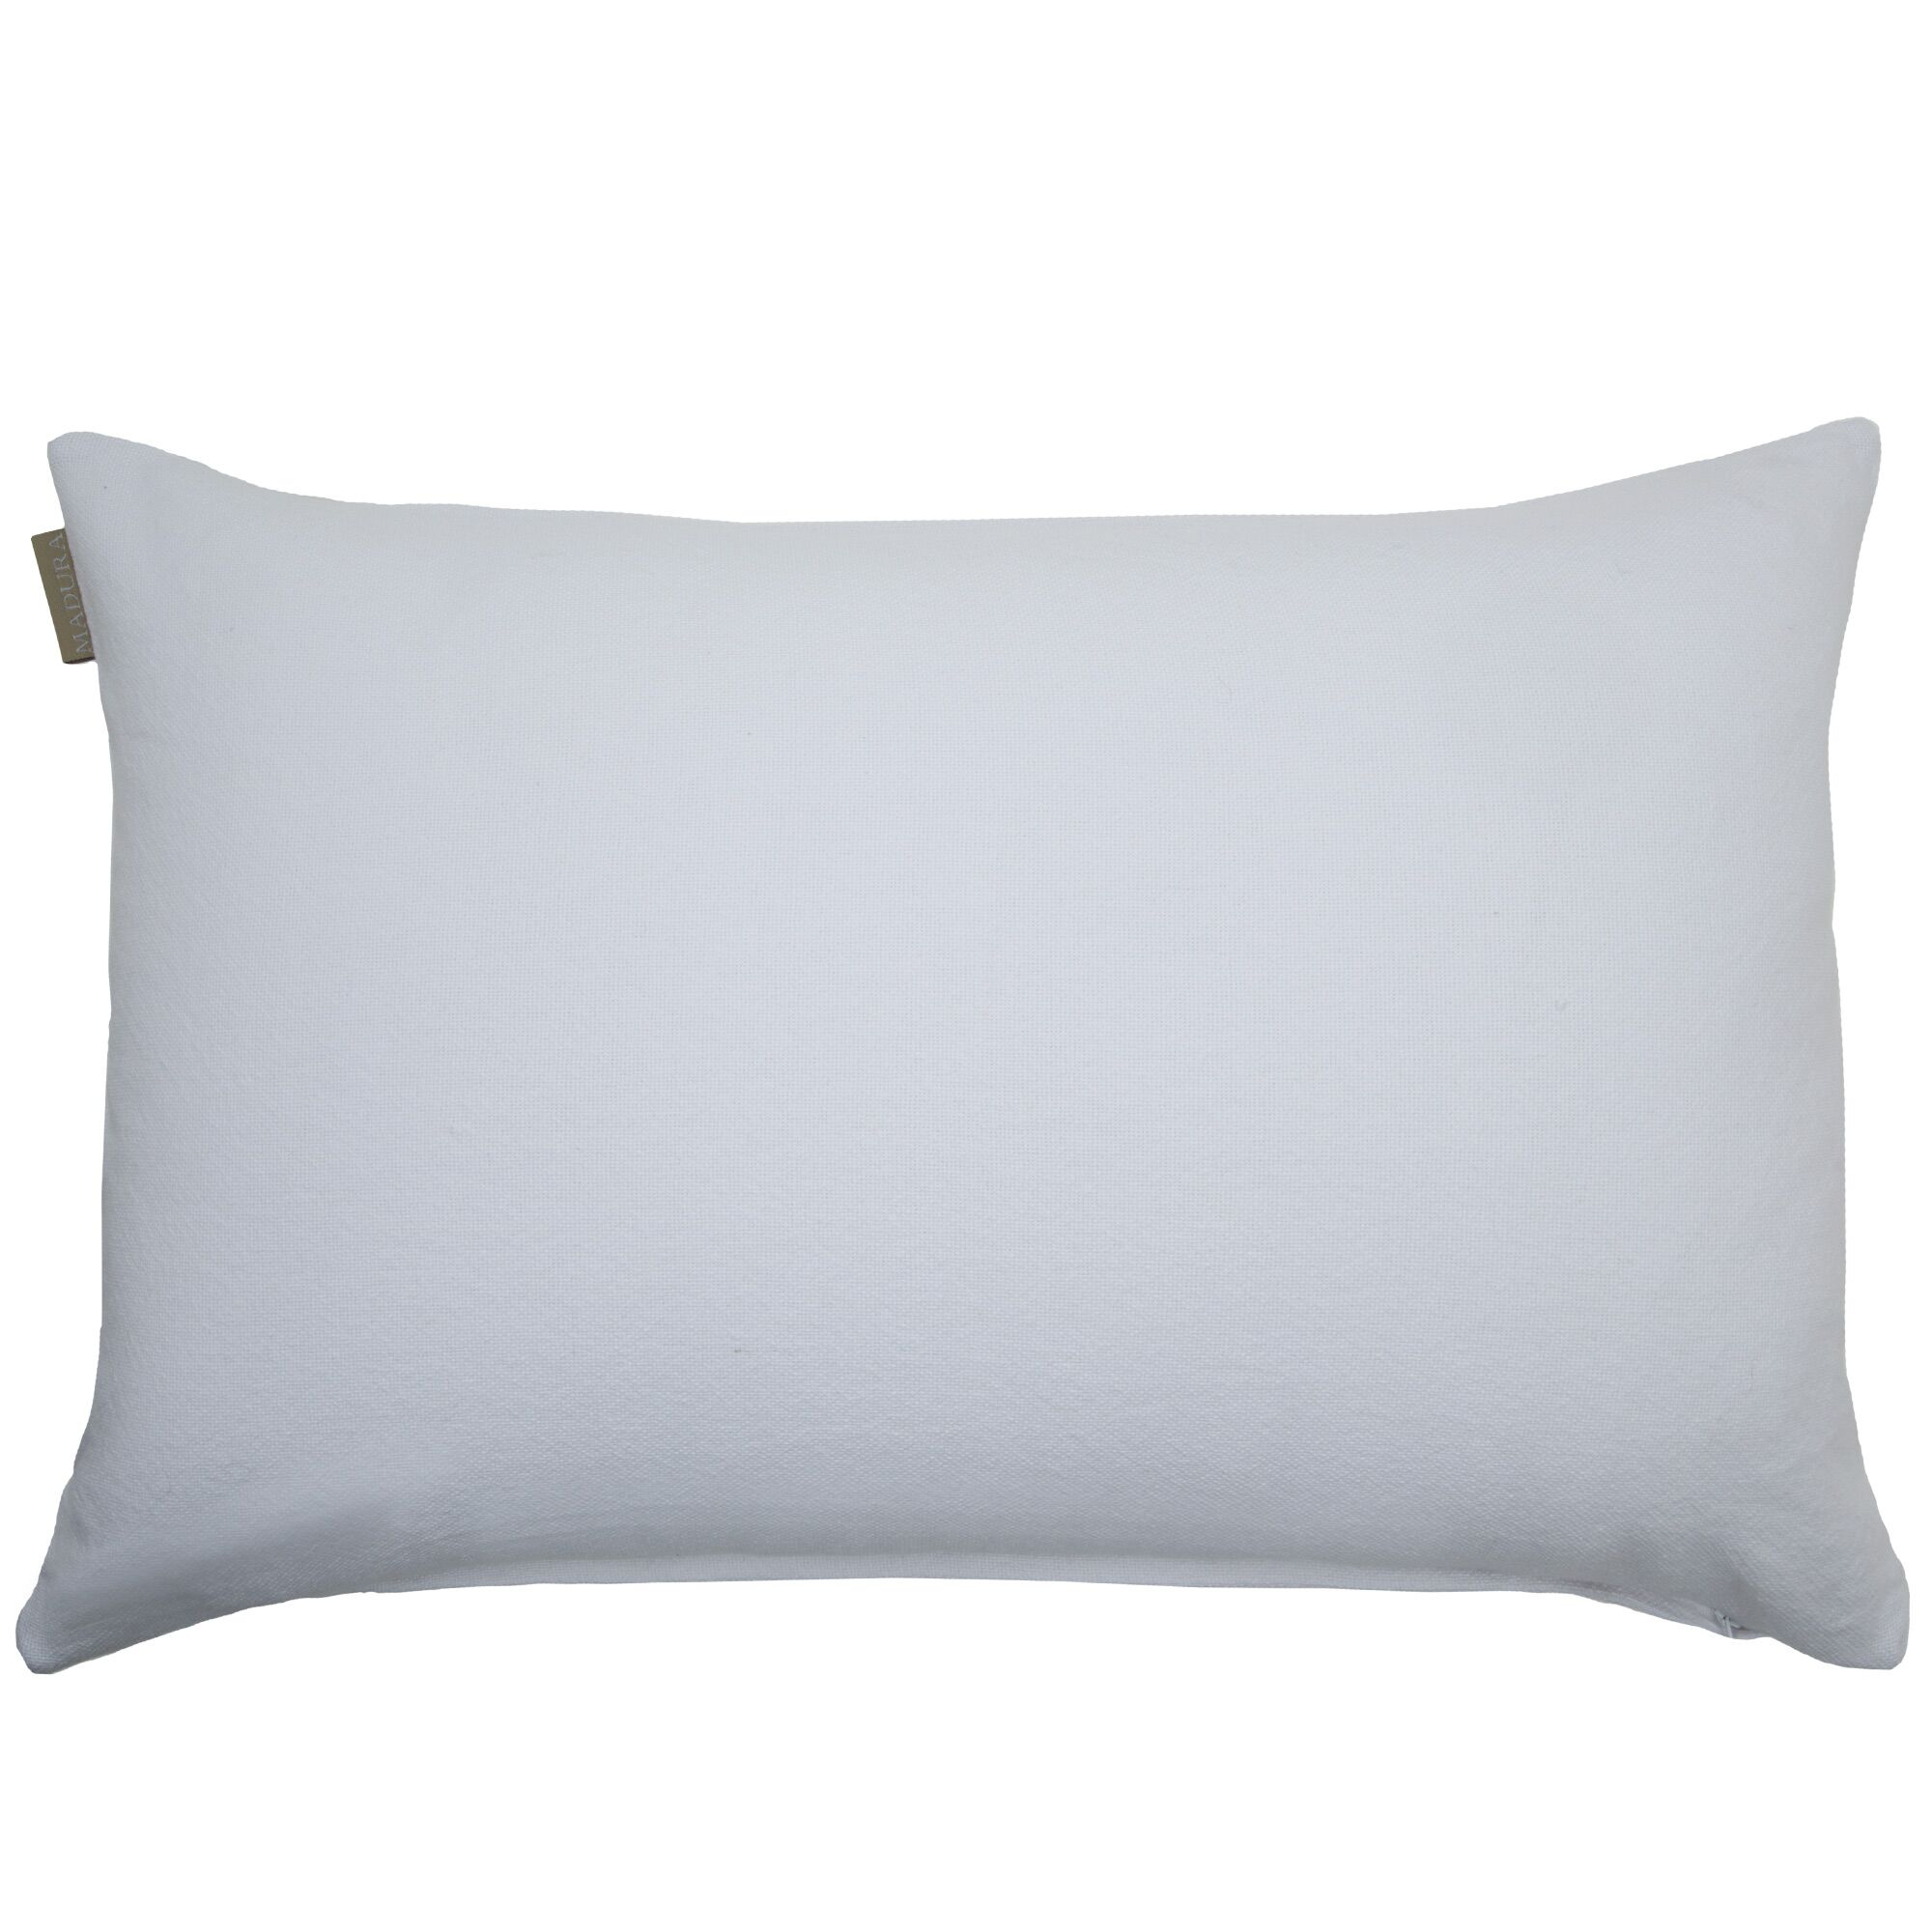 Amish Cotton Pillow Cover Color: White